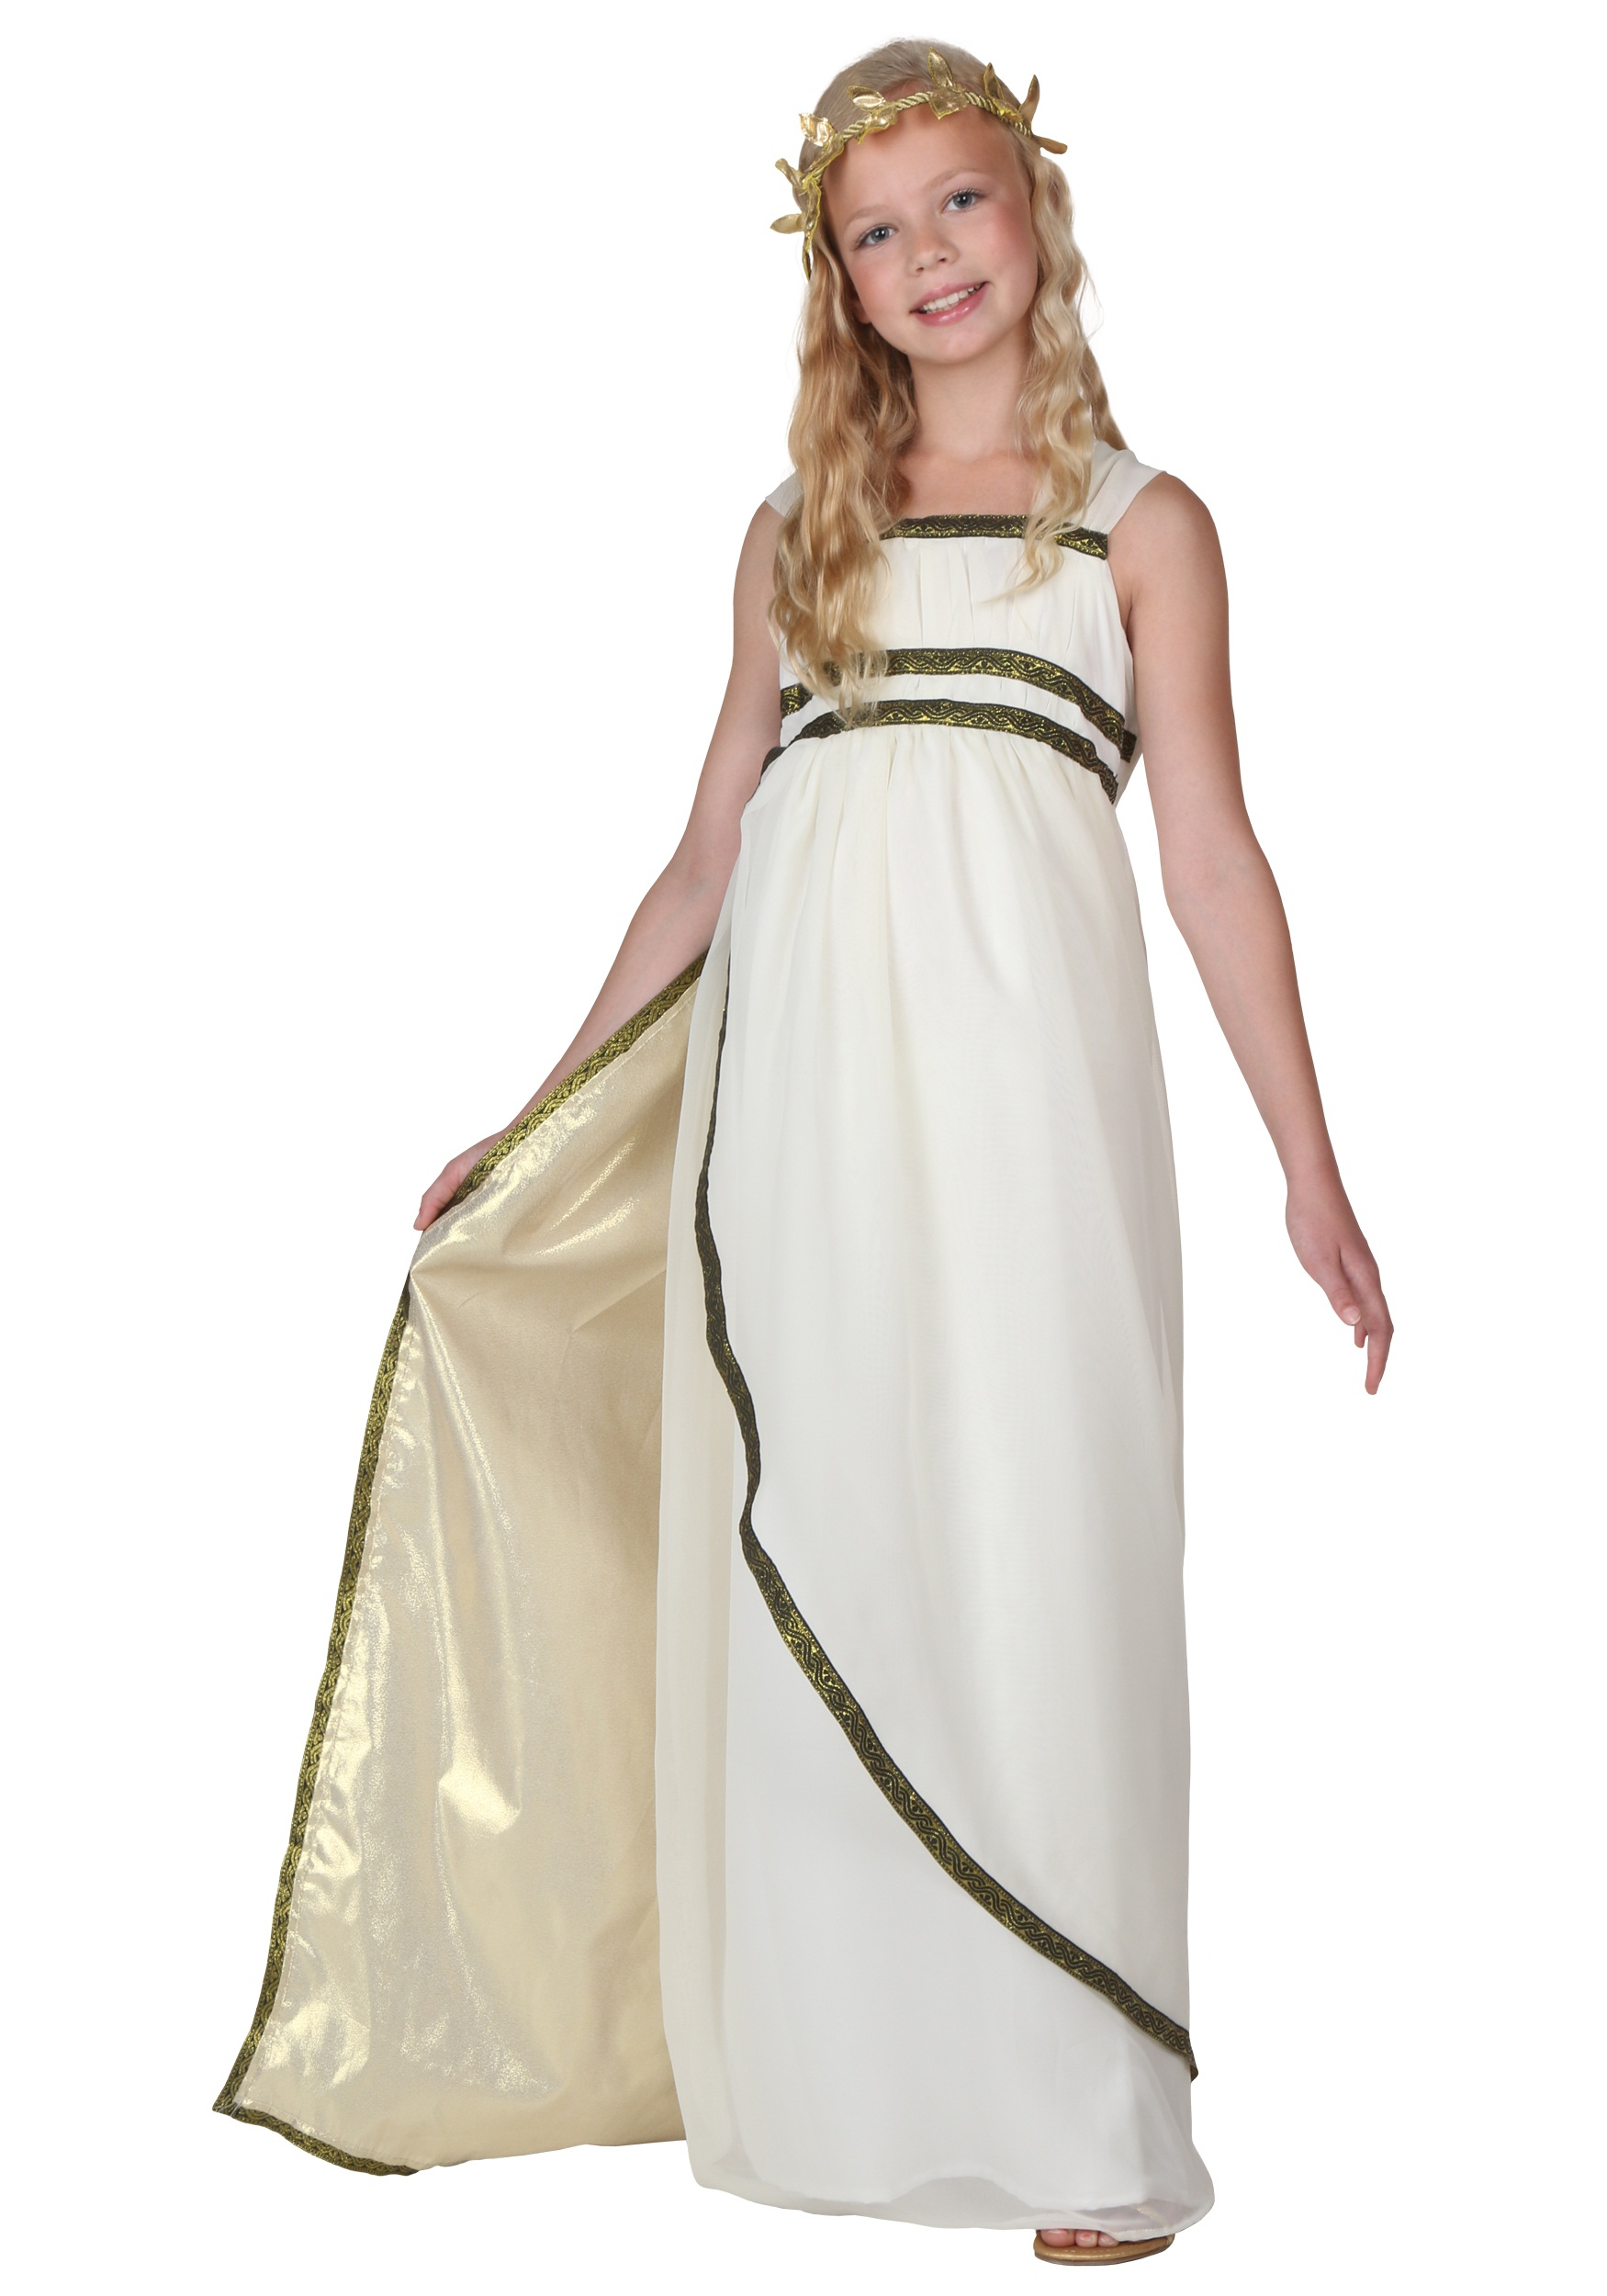 Roman Warriors & Greek Goddess Costumes - HalloweenCostumes.com